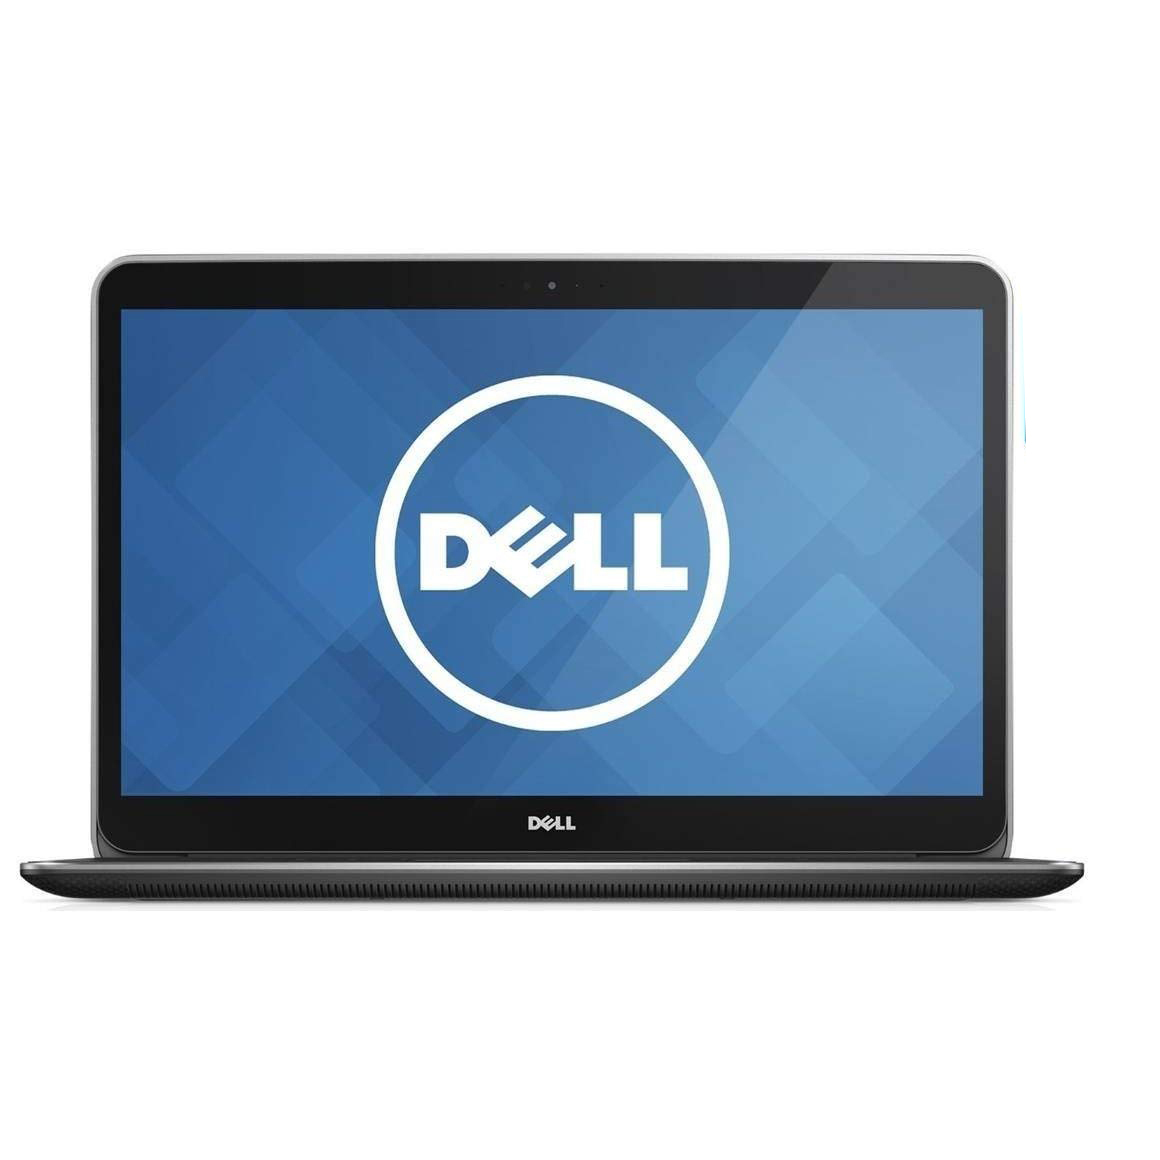 "Dell XPS 15.6"" Ultra Thin Light Laptop, touch screen, 4th Gen, Core i5, 32GB SSD, 8GB (2X4GB) Dual"